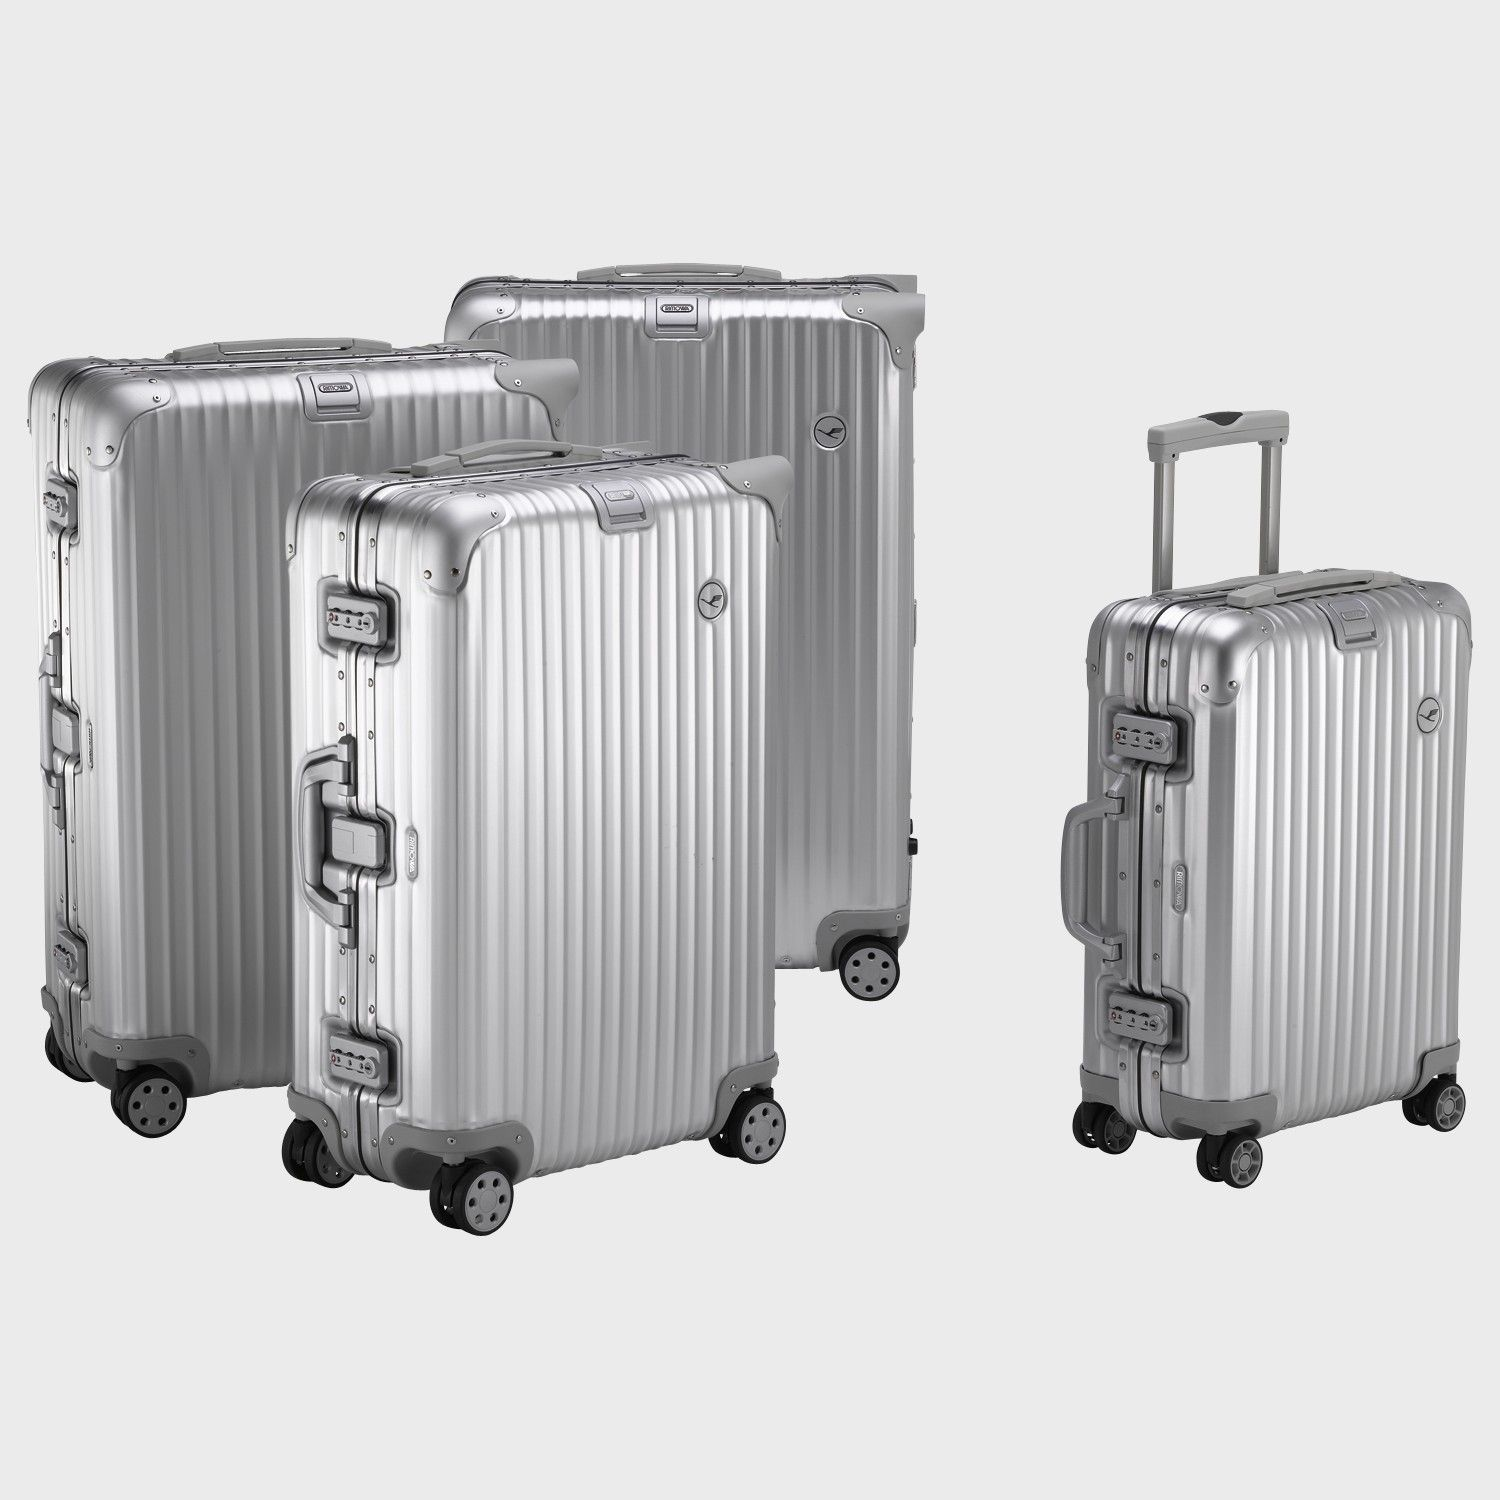 8815f95a1a71 luxury luggage   love it  Rimowa Lufthansa Alu Collection ...